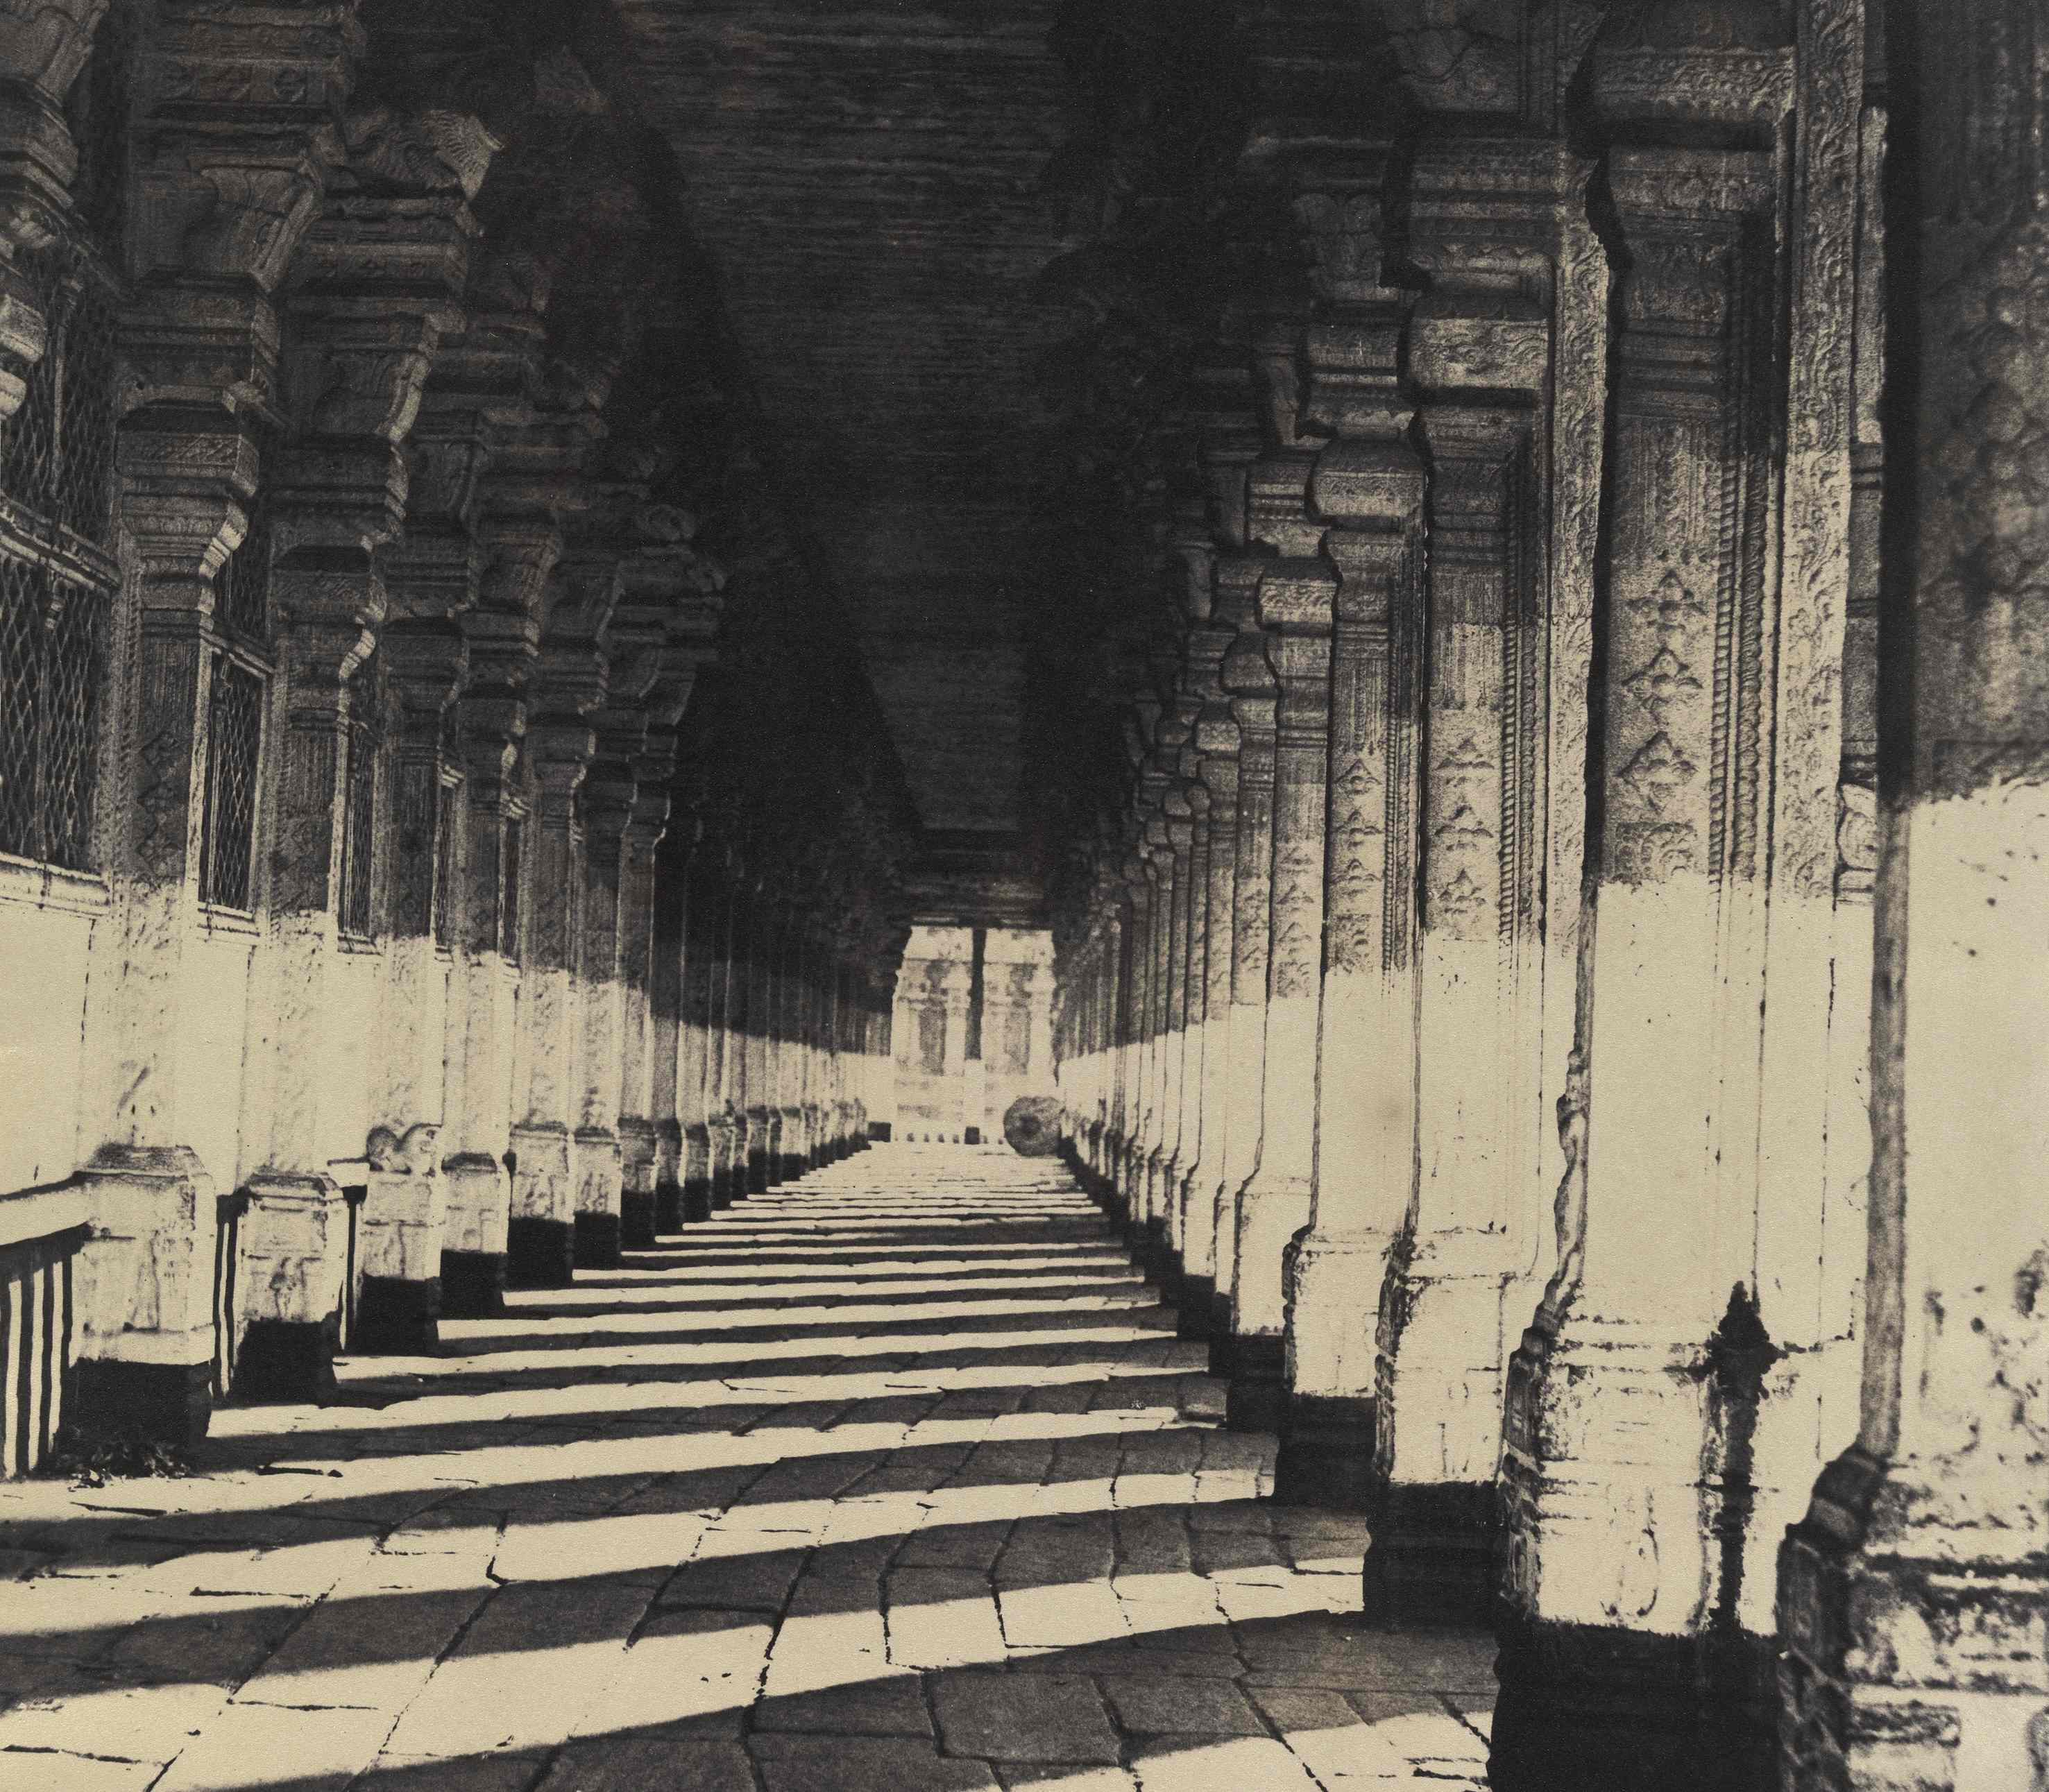 Captain Linnaeus Tripe Trimul Naiks Choultry Side Veranda from West Madura India 1858 Albumen print